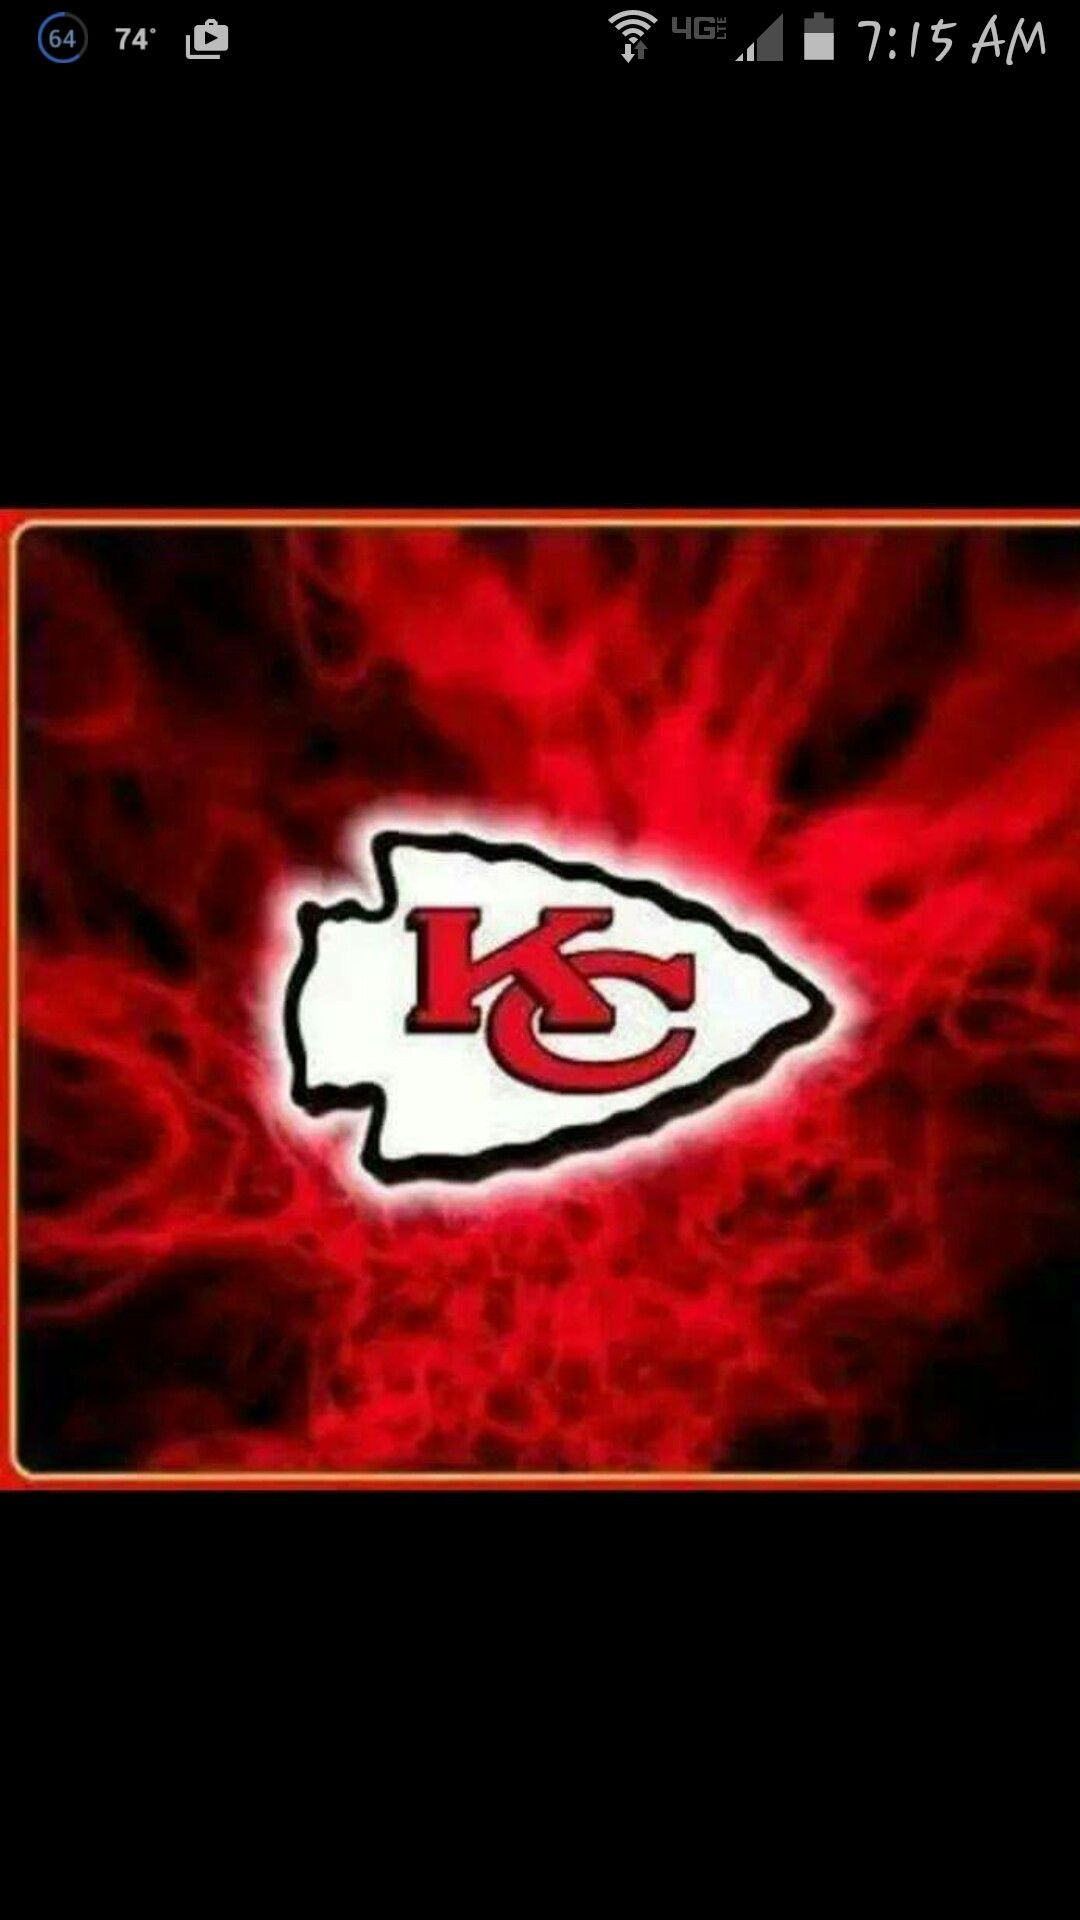 Arrowhead Red Fire Kc Cheifs Kansas City Chiefs Retail Logos